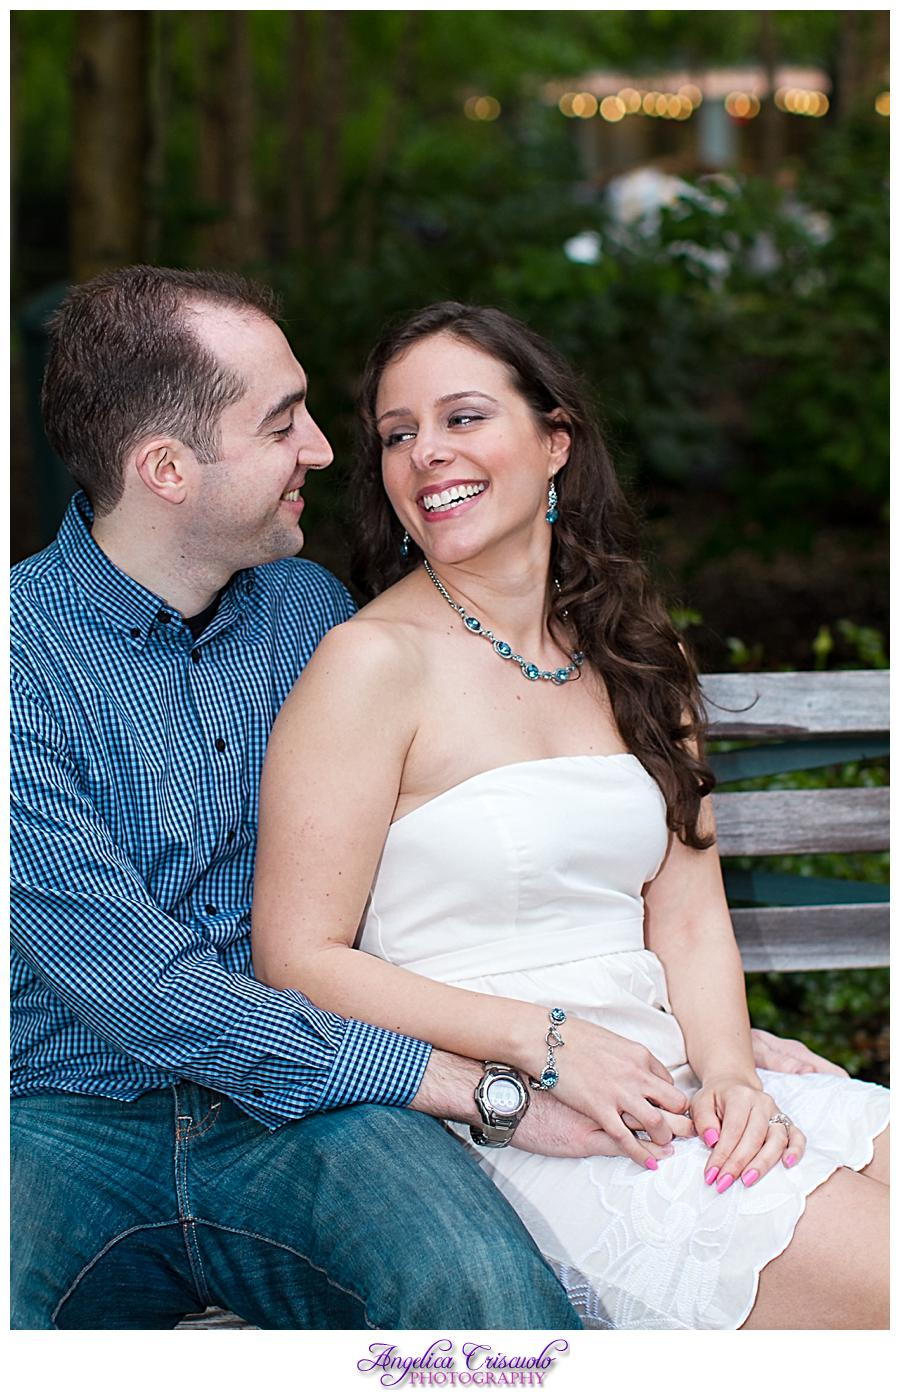 New York City Stuyvesant Town Engagement Session Ideas